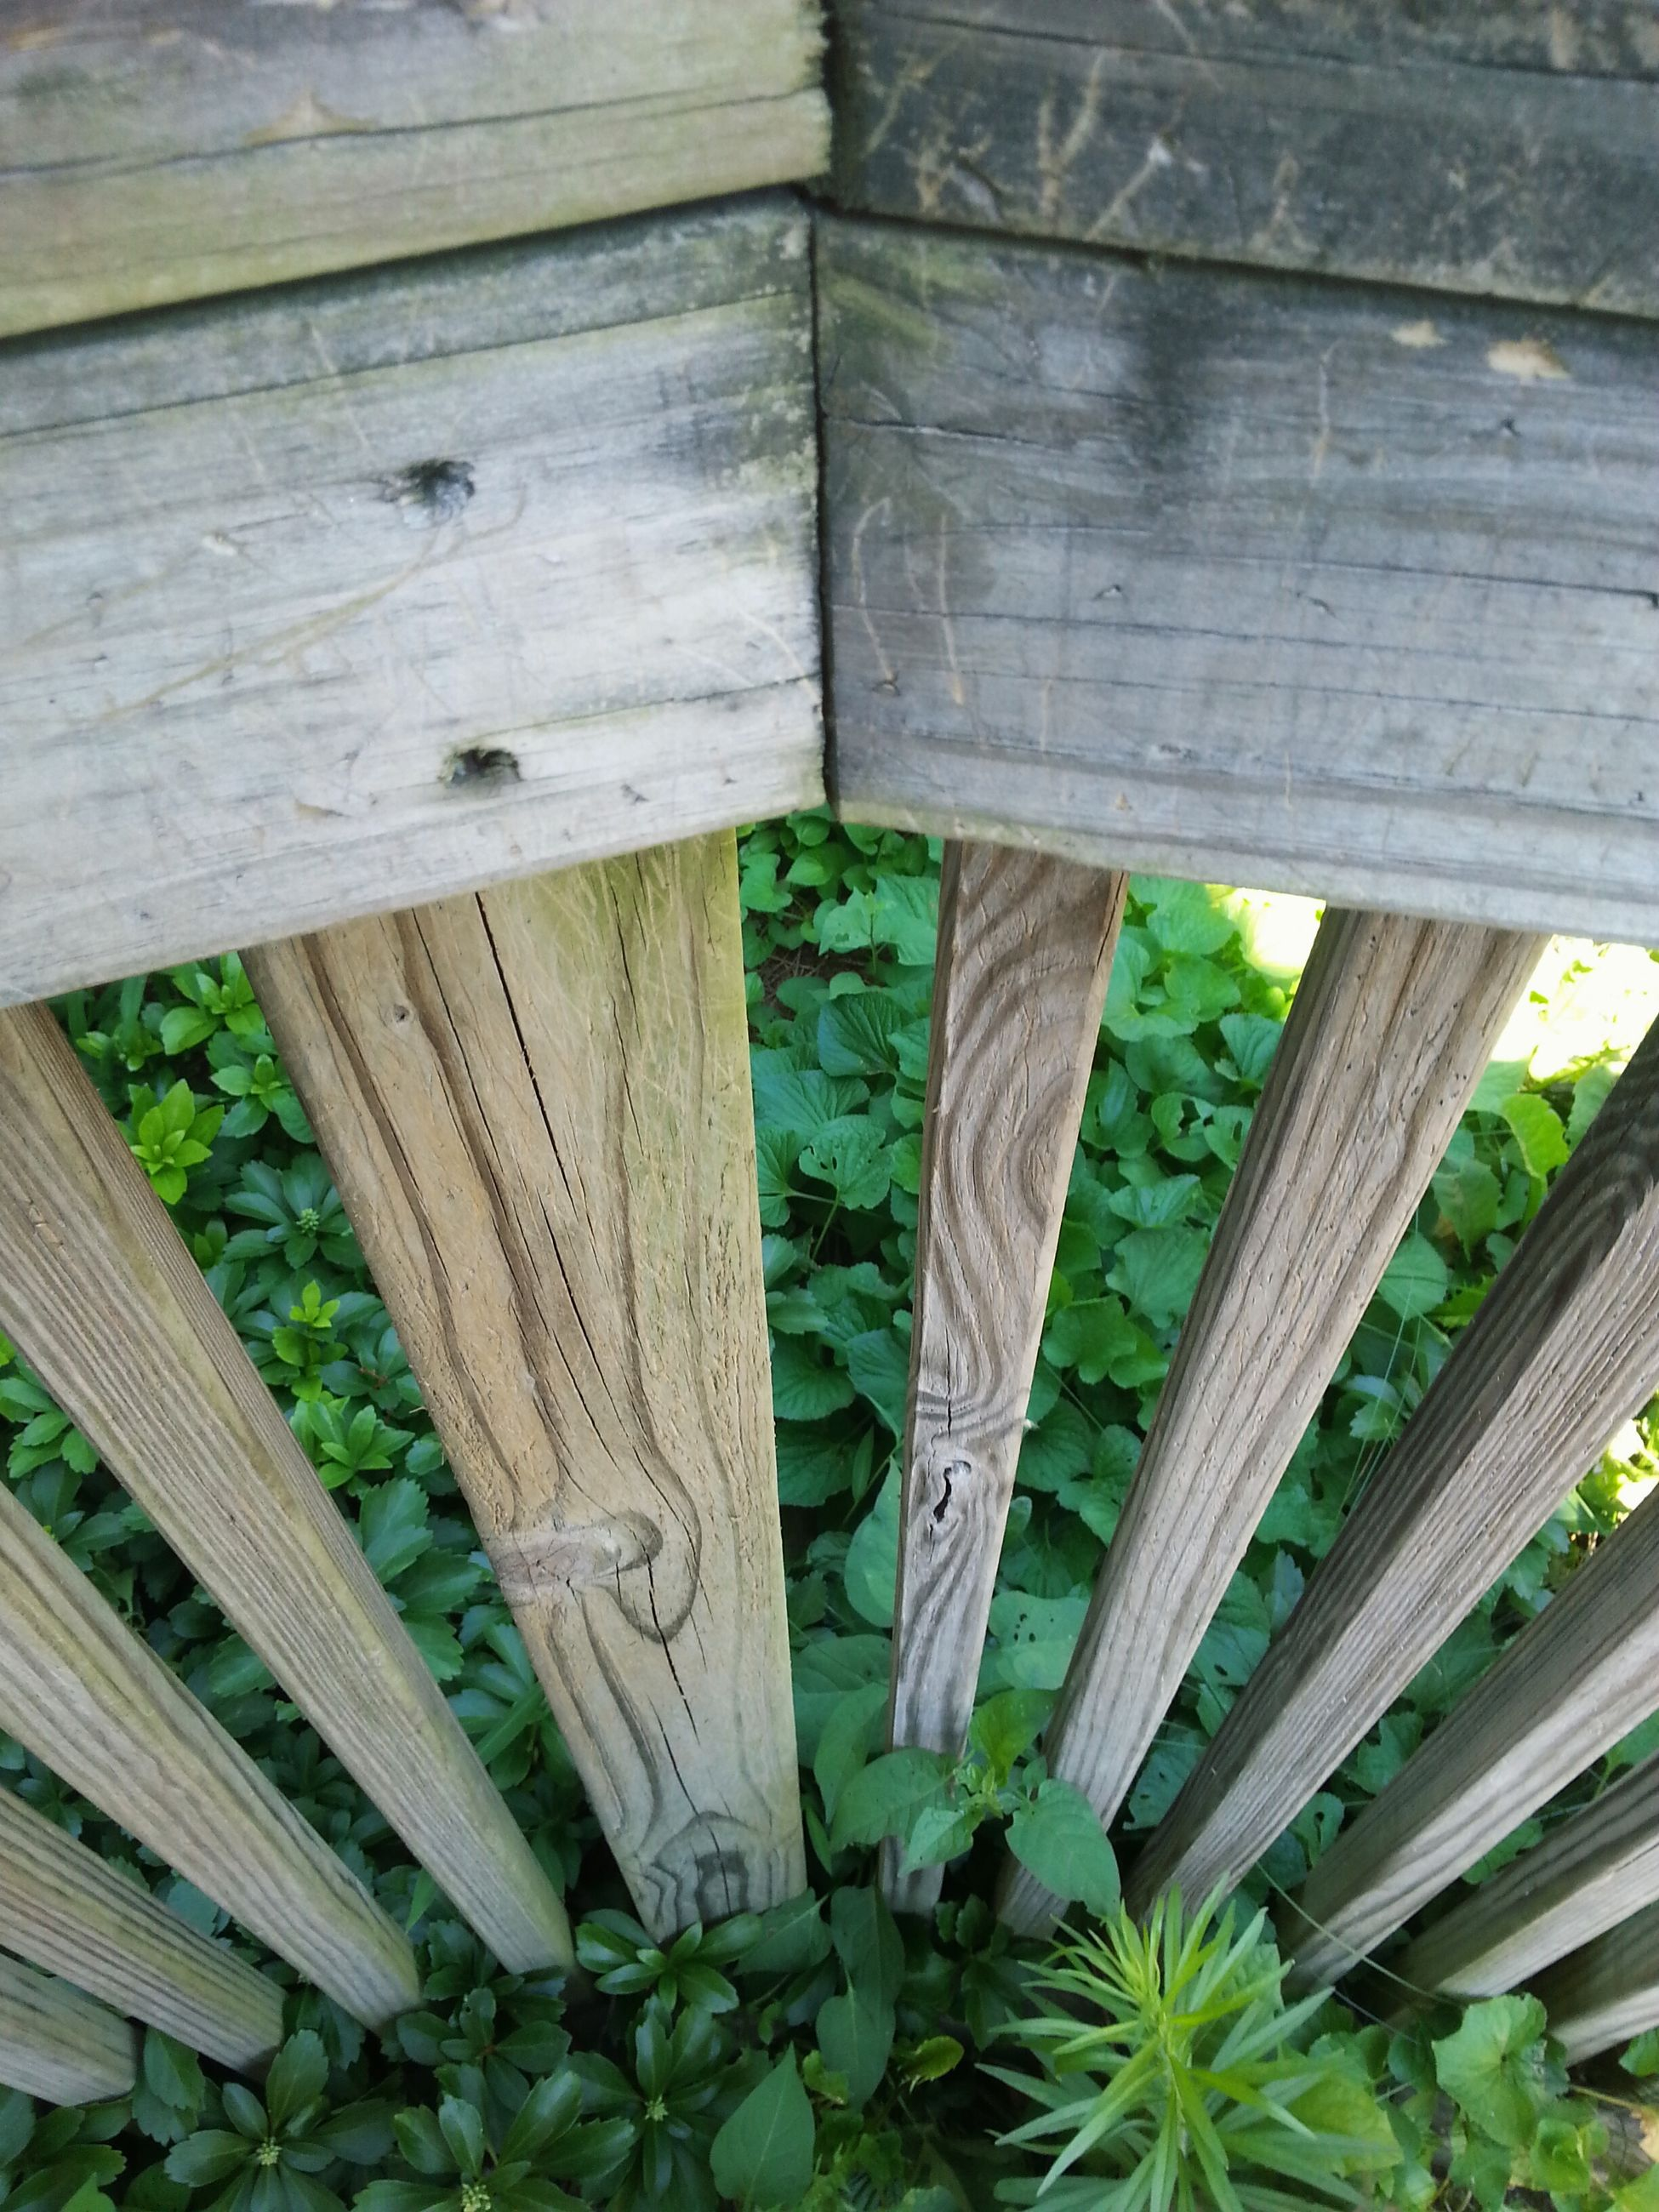 wood - material, wooden, wood, plank, fence, pattern, day, no people, built structure, close-up, growth, outdoors, textured, tree, nature, low angle view, sunlight, protection, old, architecture